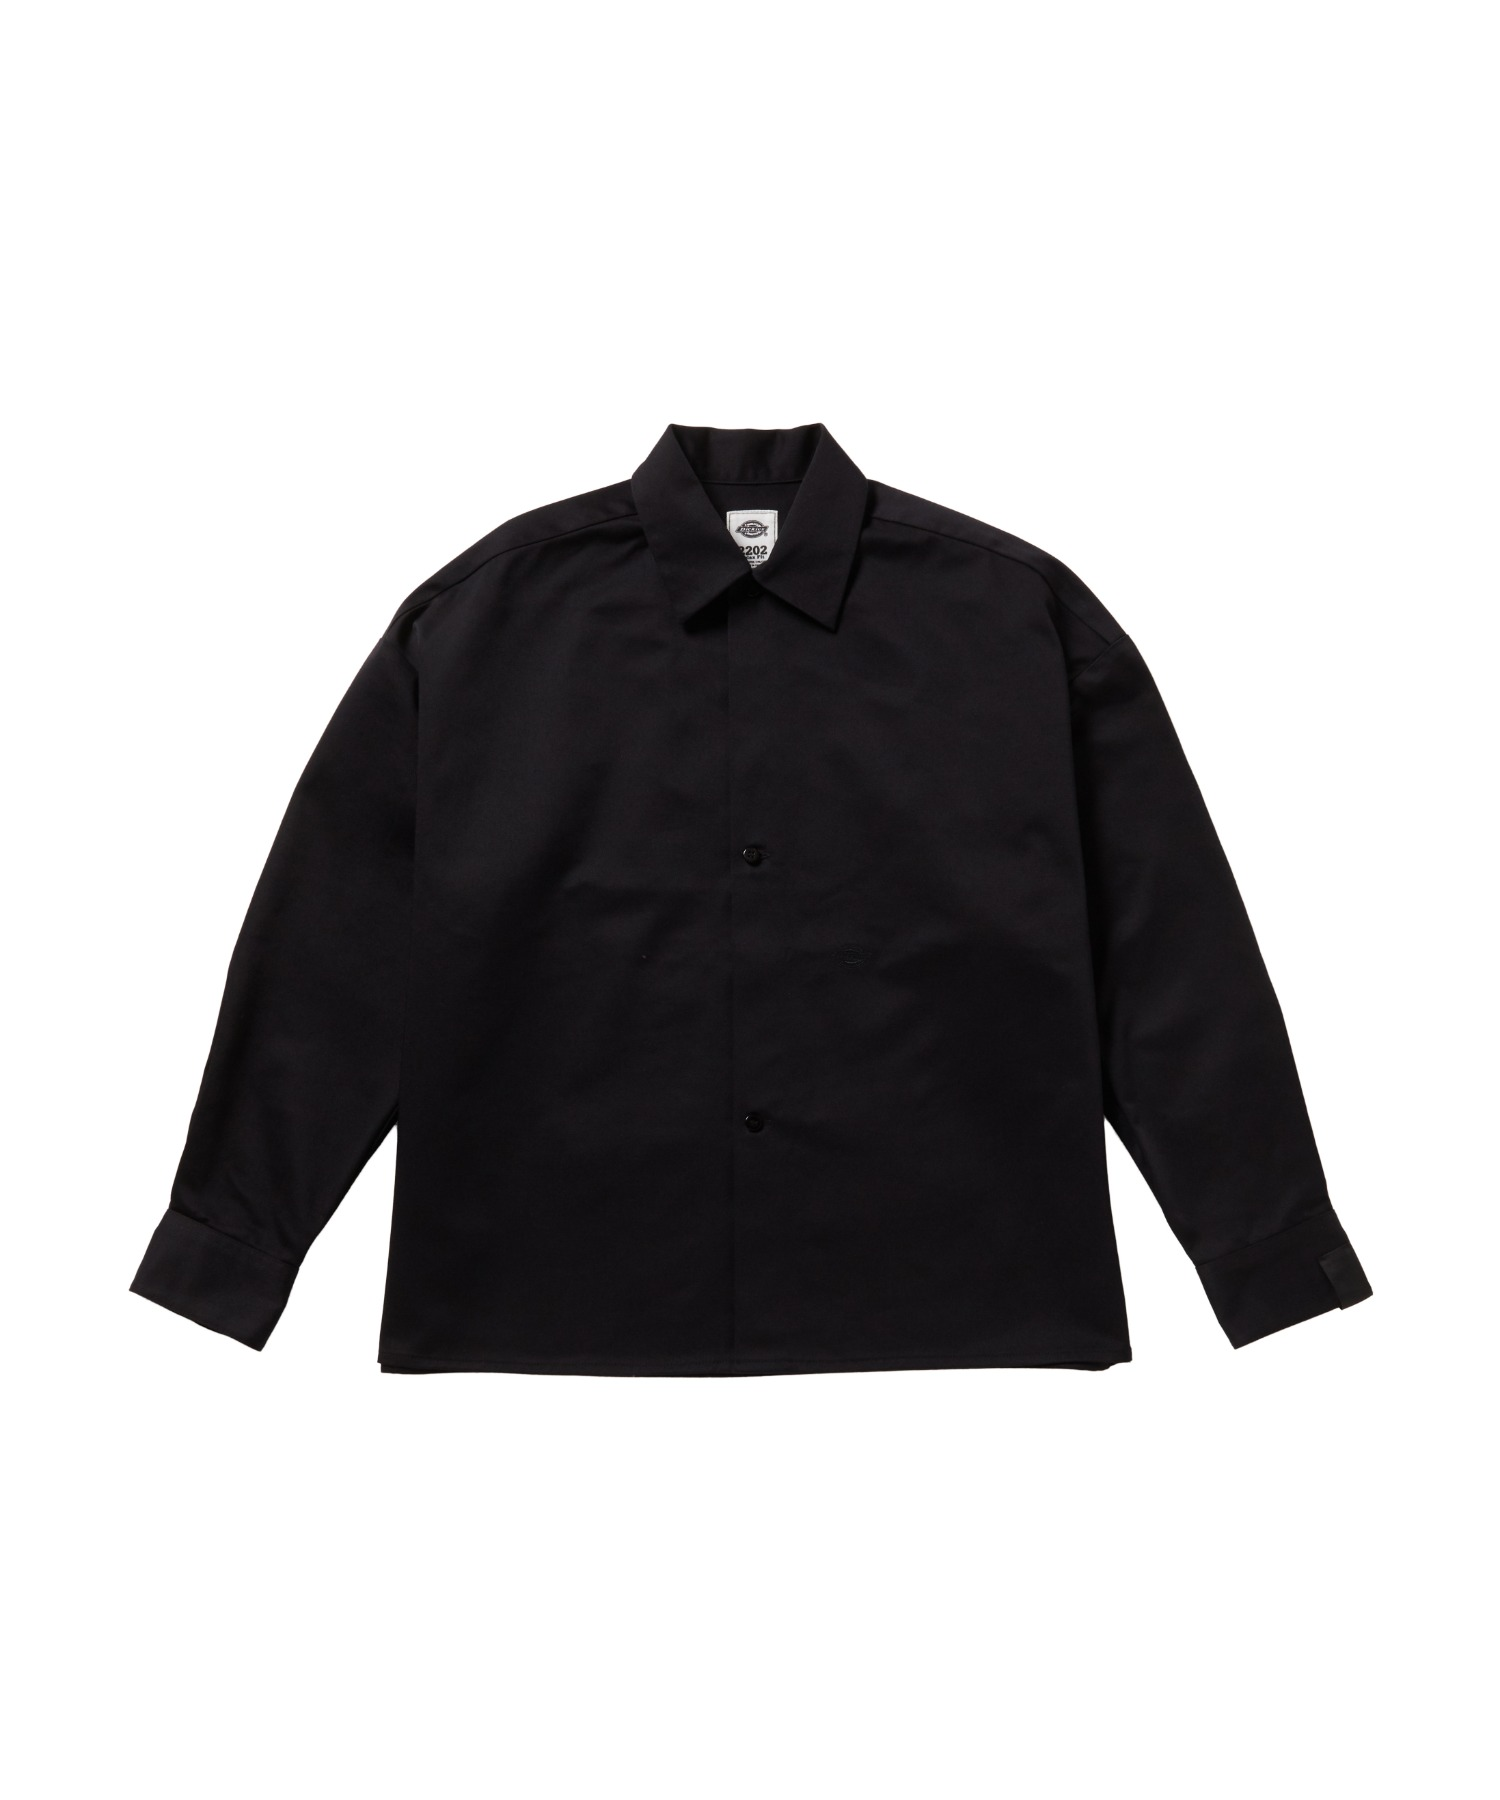 2202 Relax Fit SHIRT